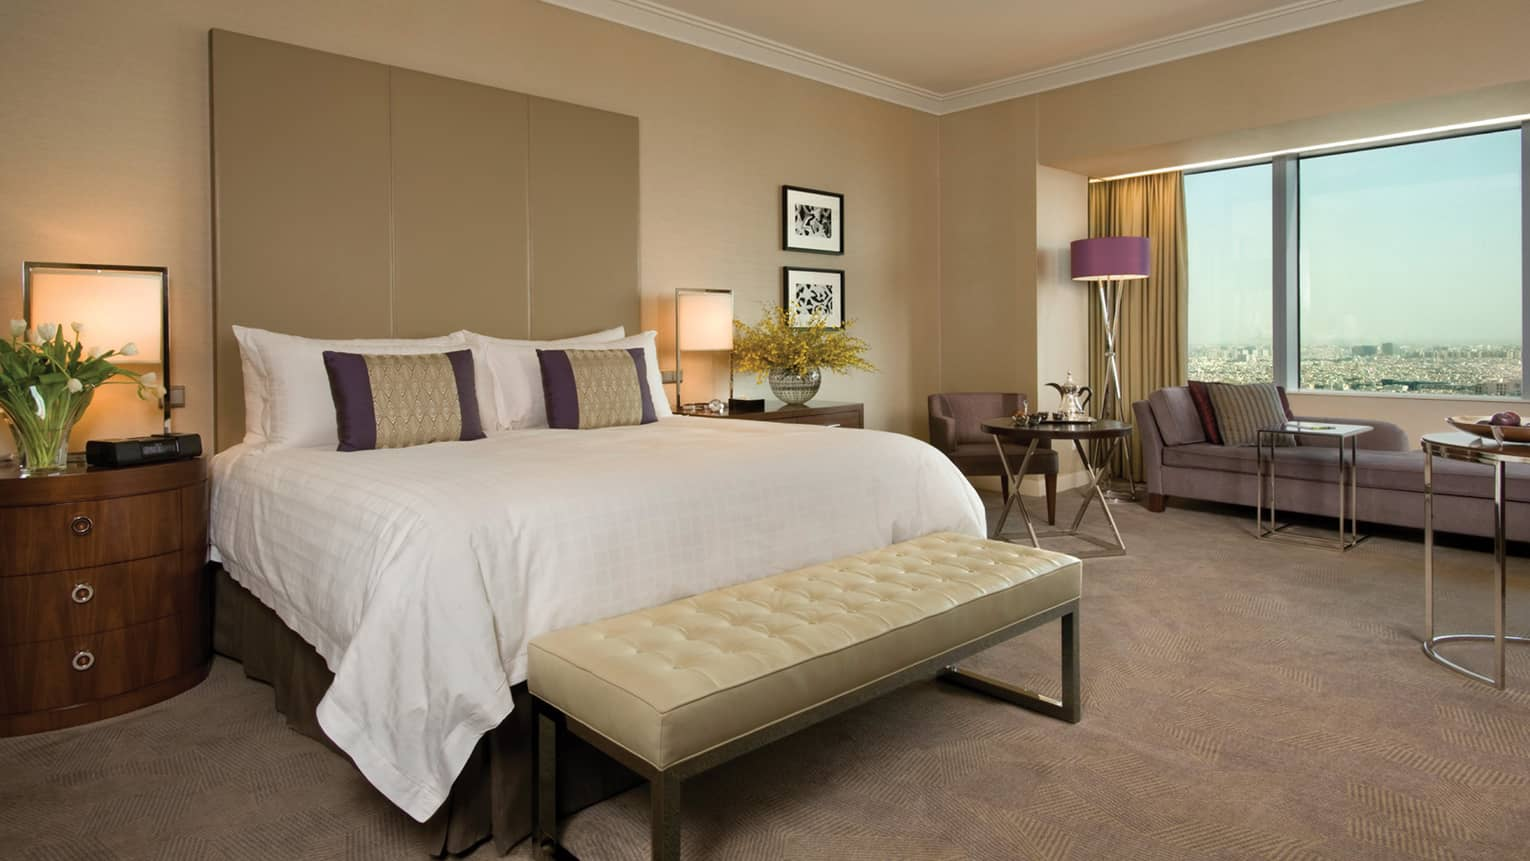 Deluxe hotel room bed with tall padded headboard and leather bench, beige carpet, long chaise at window